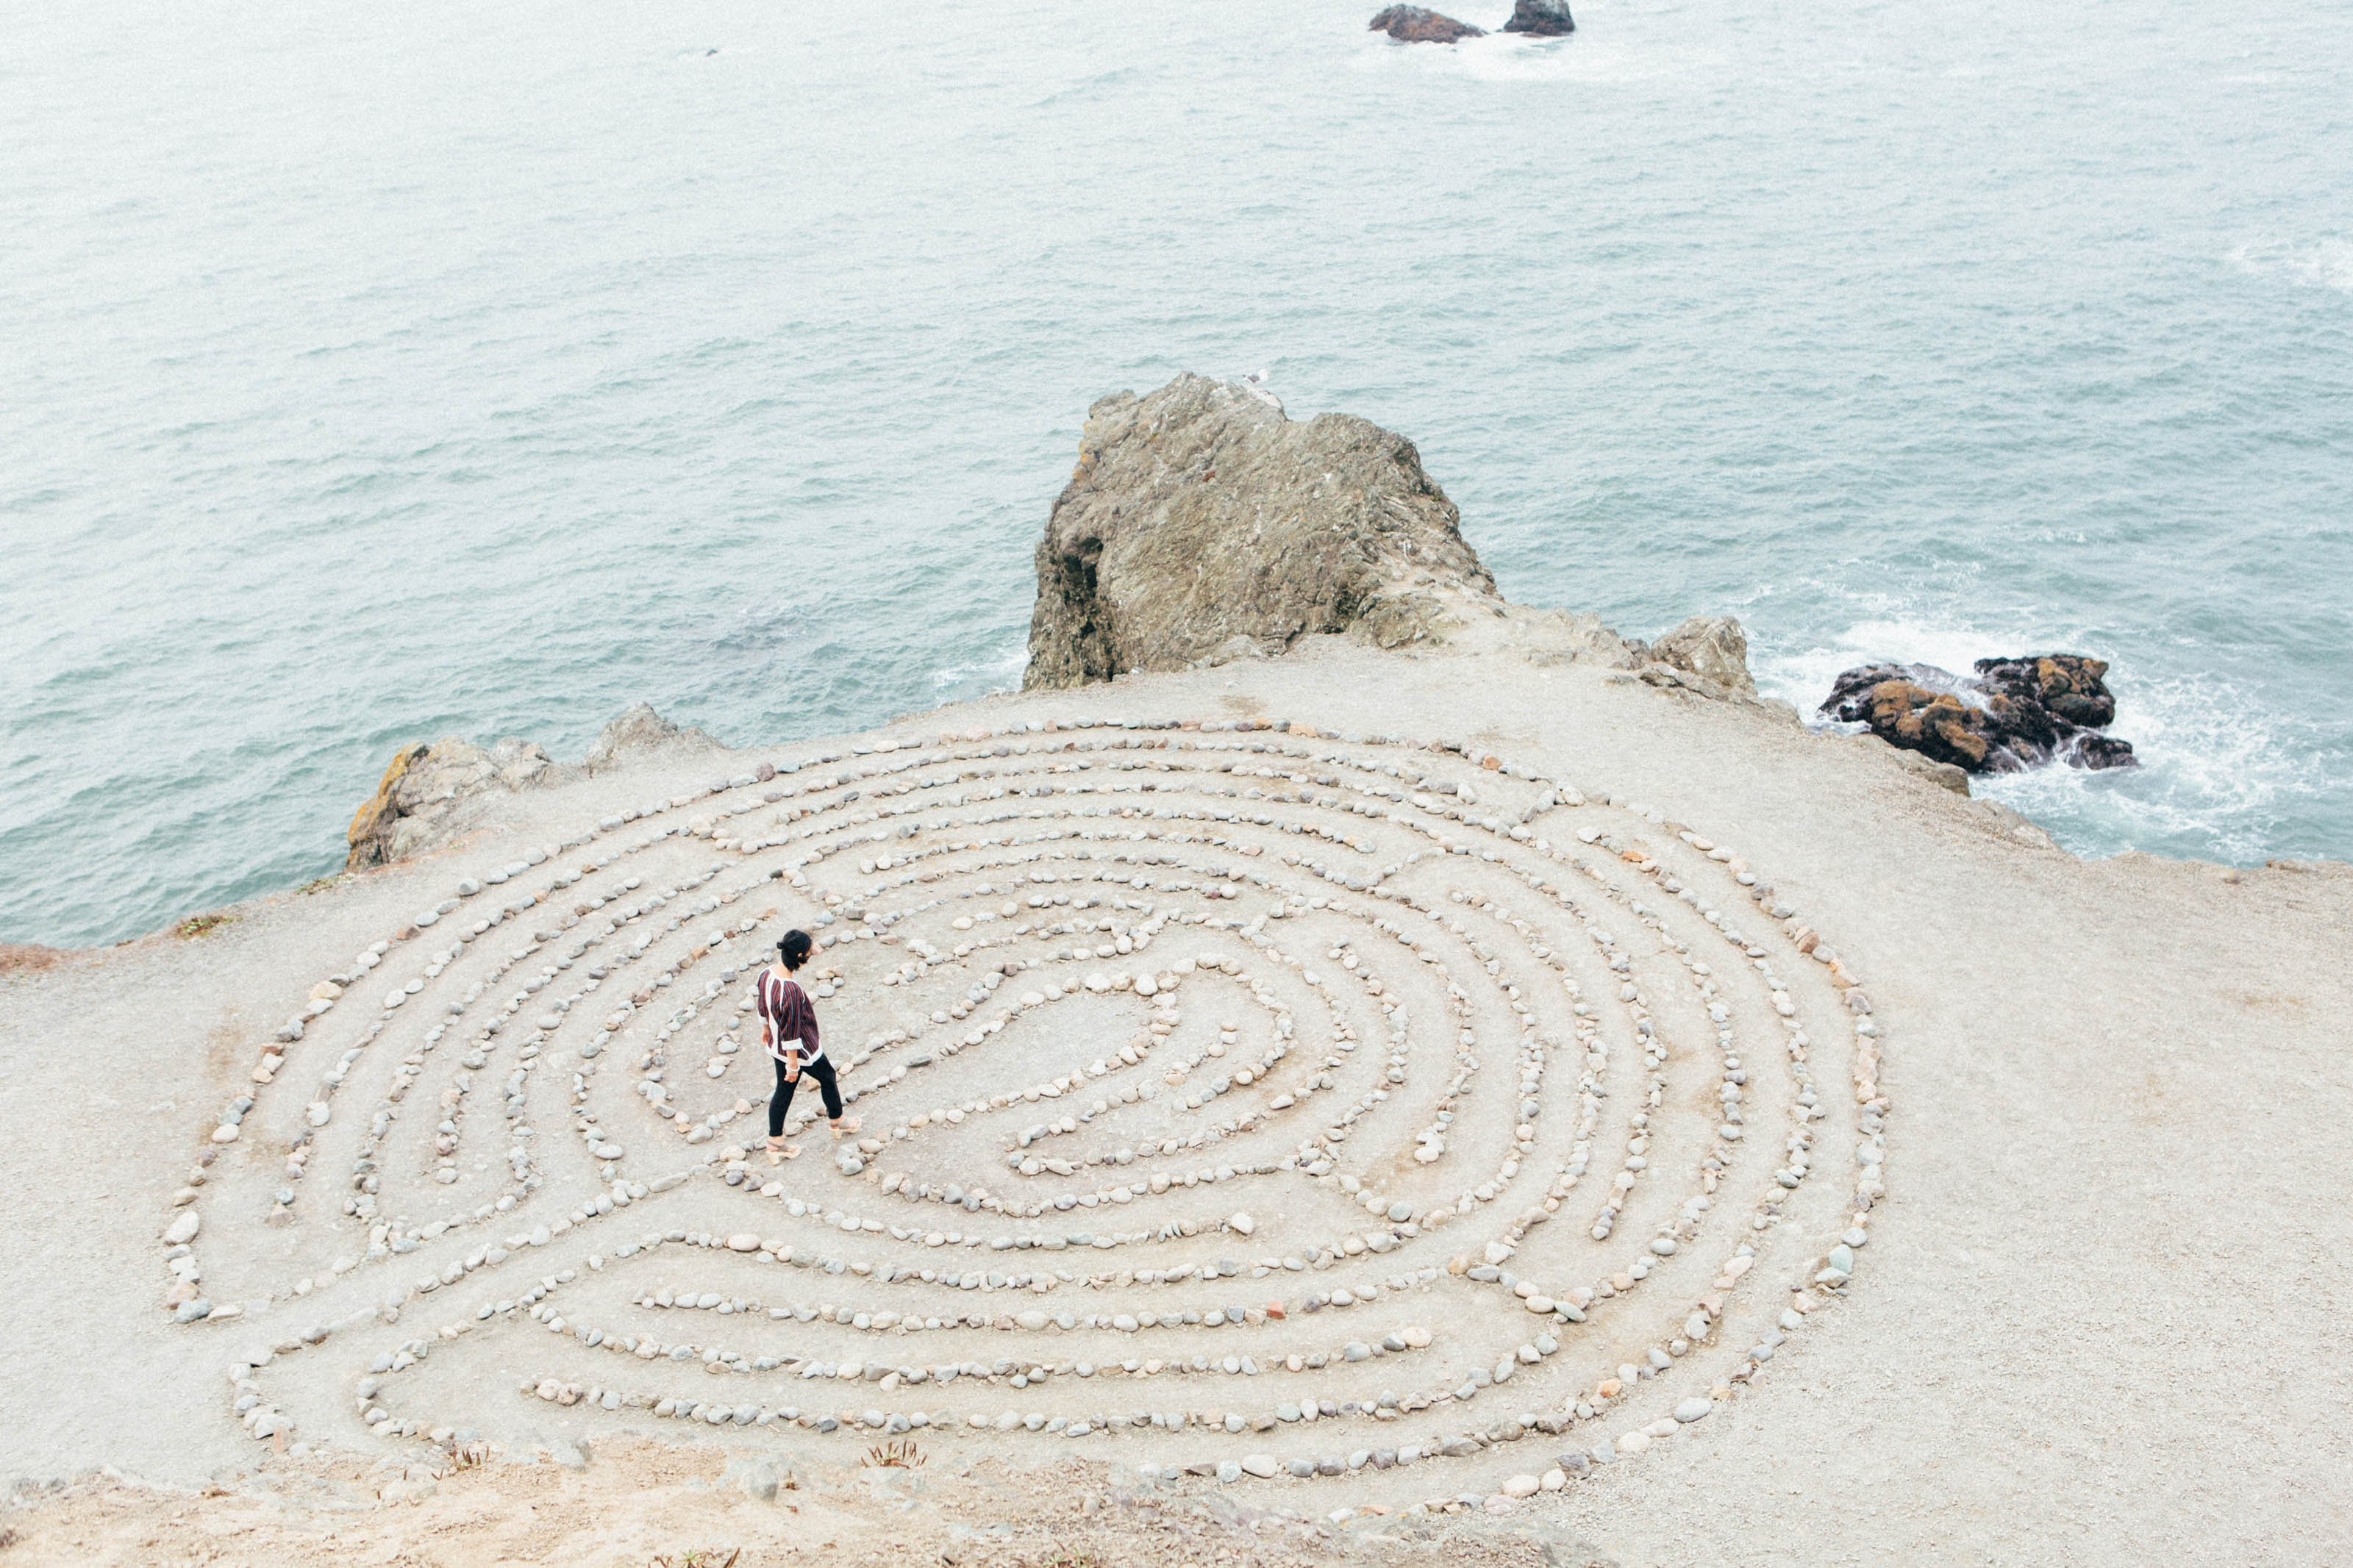 On a sandy patch of rocky coastline, a woman walks through a pattern of stones on the ground laid out like a labyrinth.